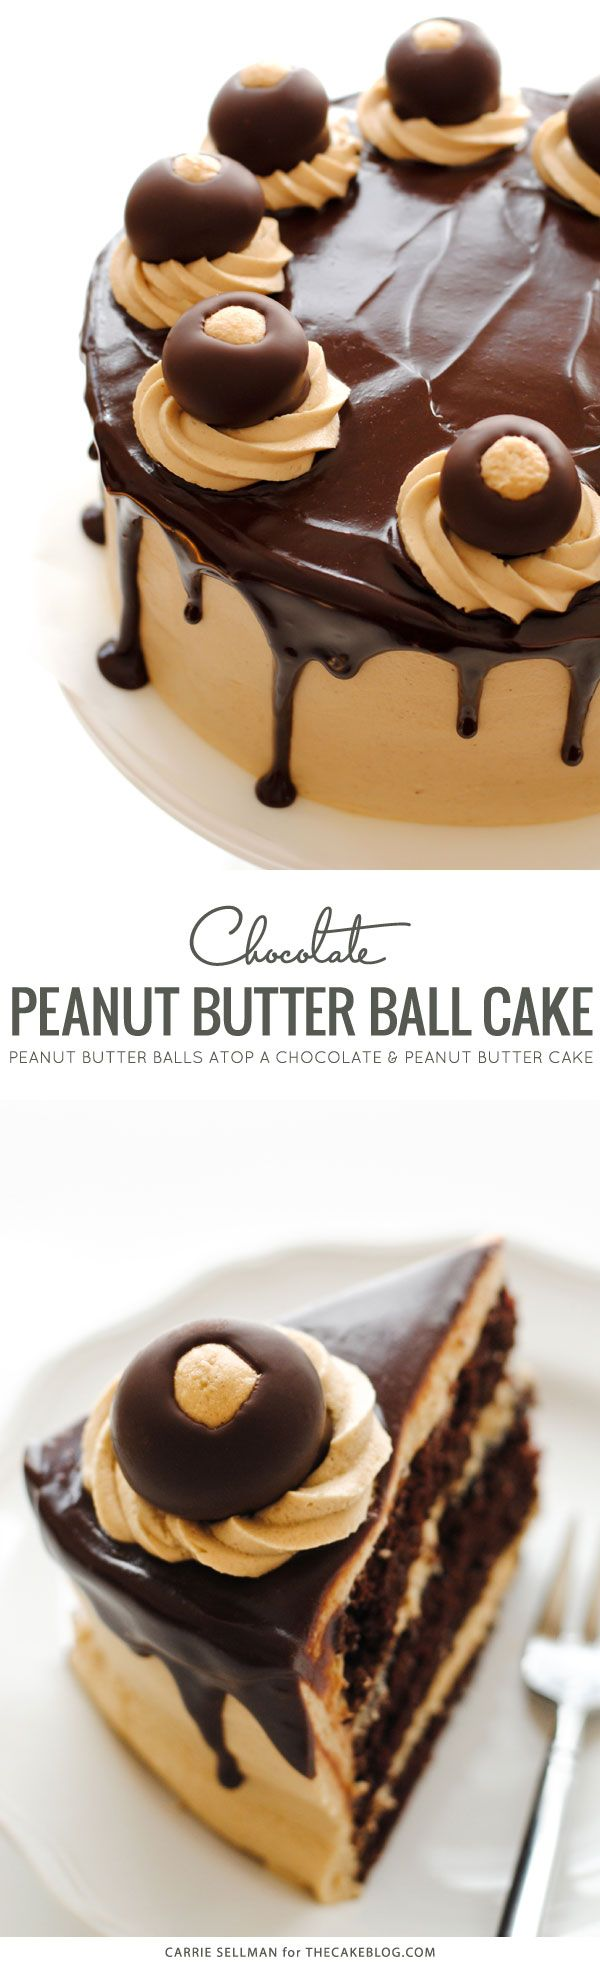 Peanut Butter Ball Cake   Buckeye Cake   by Carrie Sellman for TheCakeBlog.com